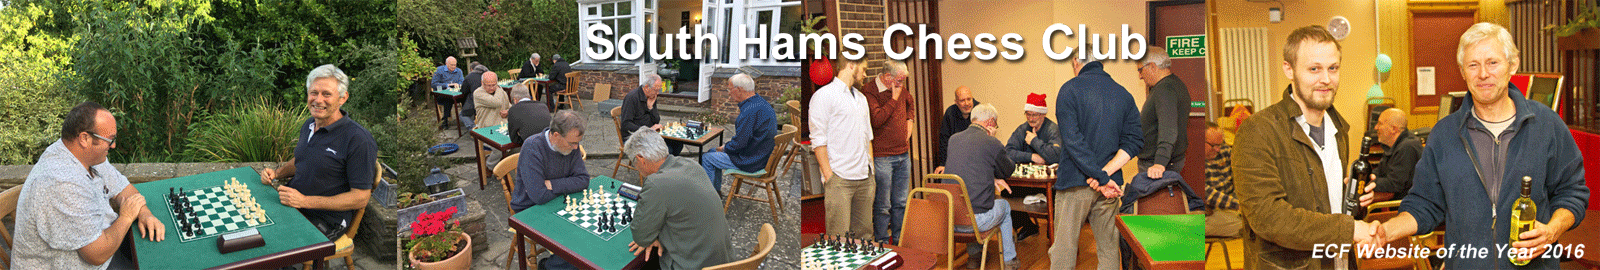 South Hams Chess Club